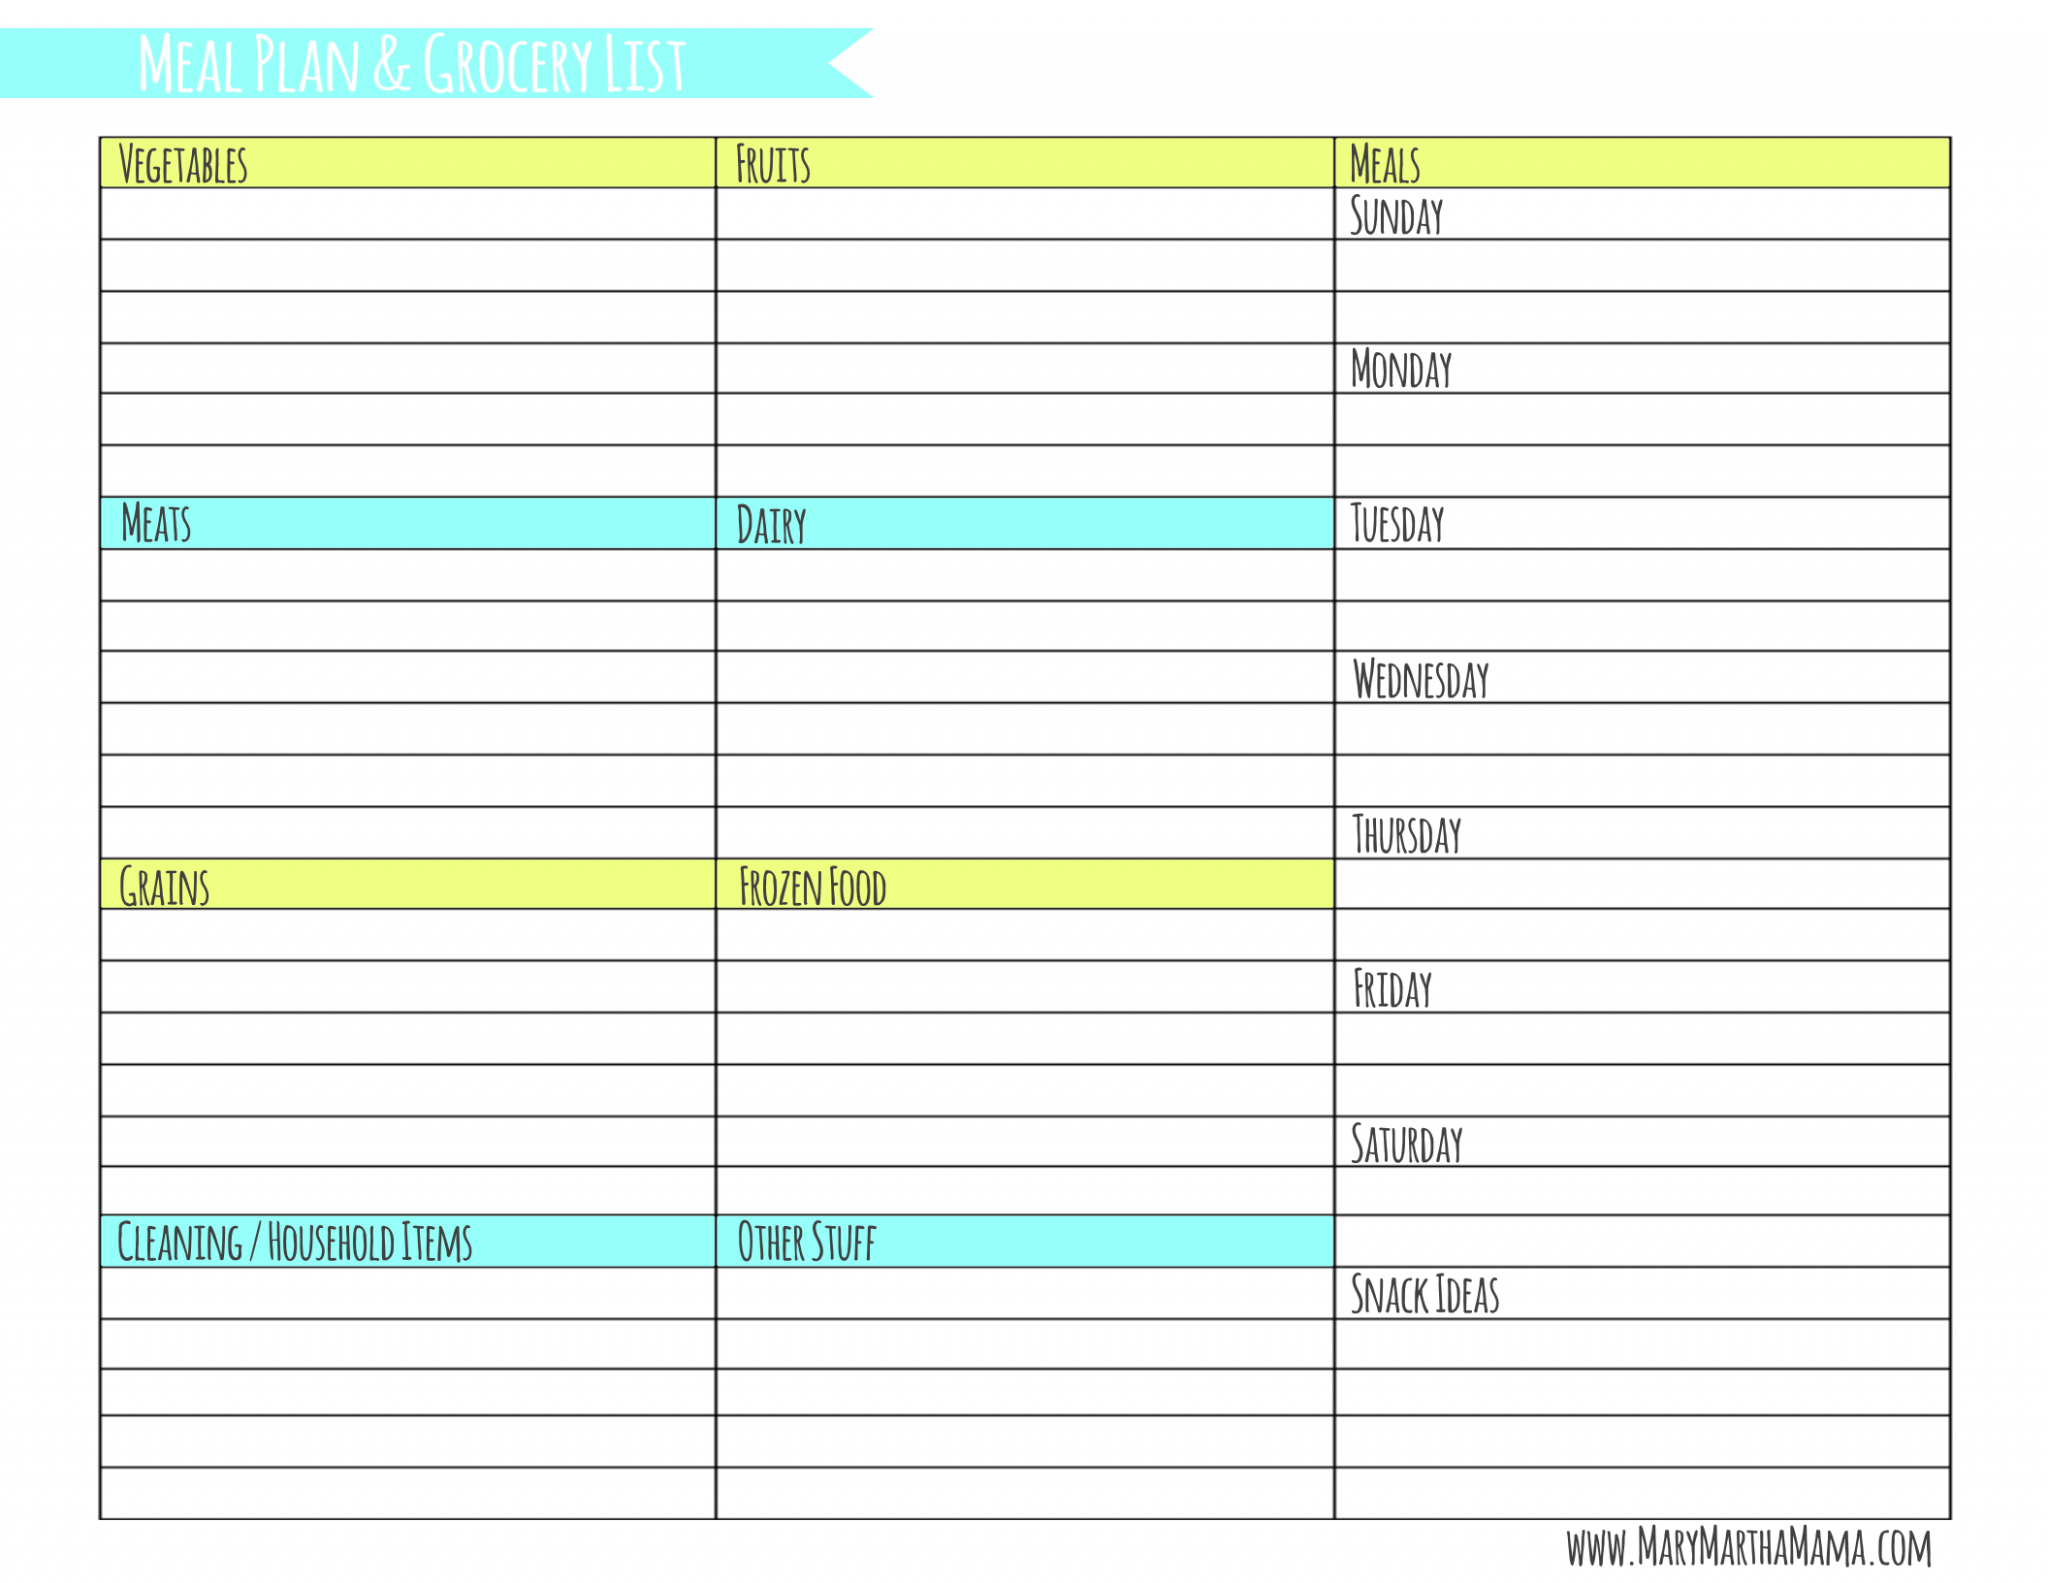 Weekly Meal Planner Template with Grocery List – Mary Martha ..